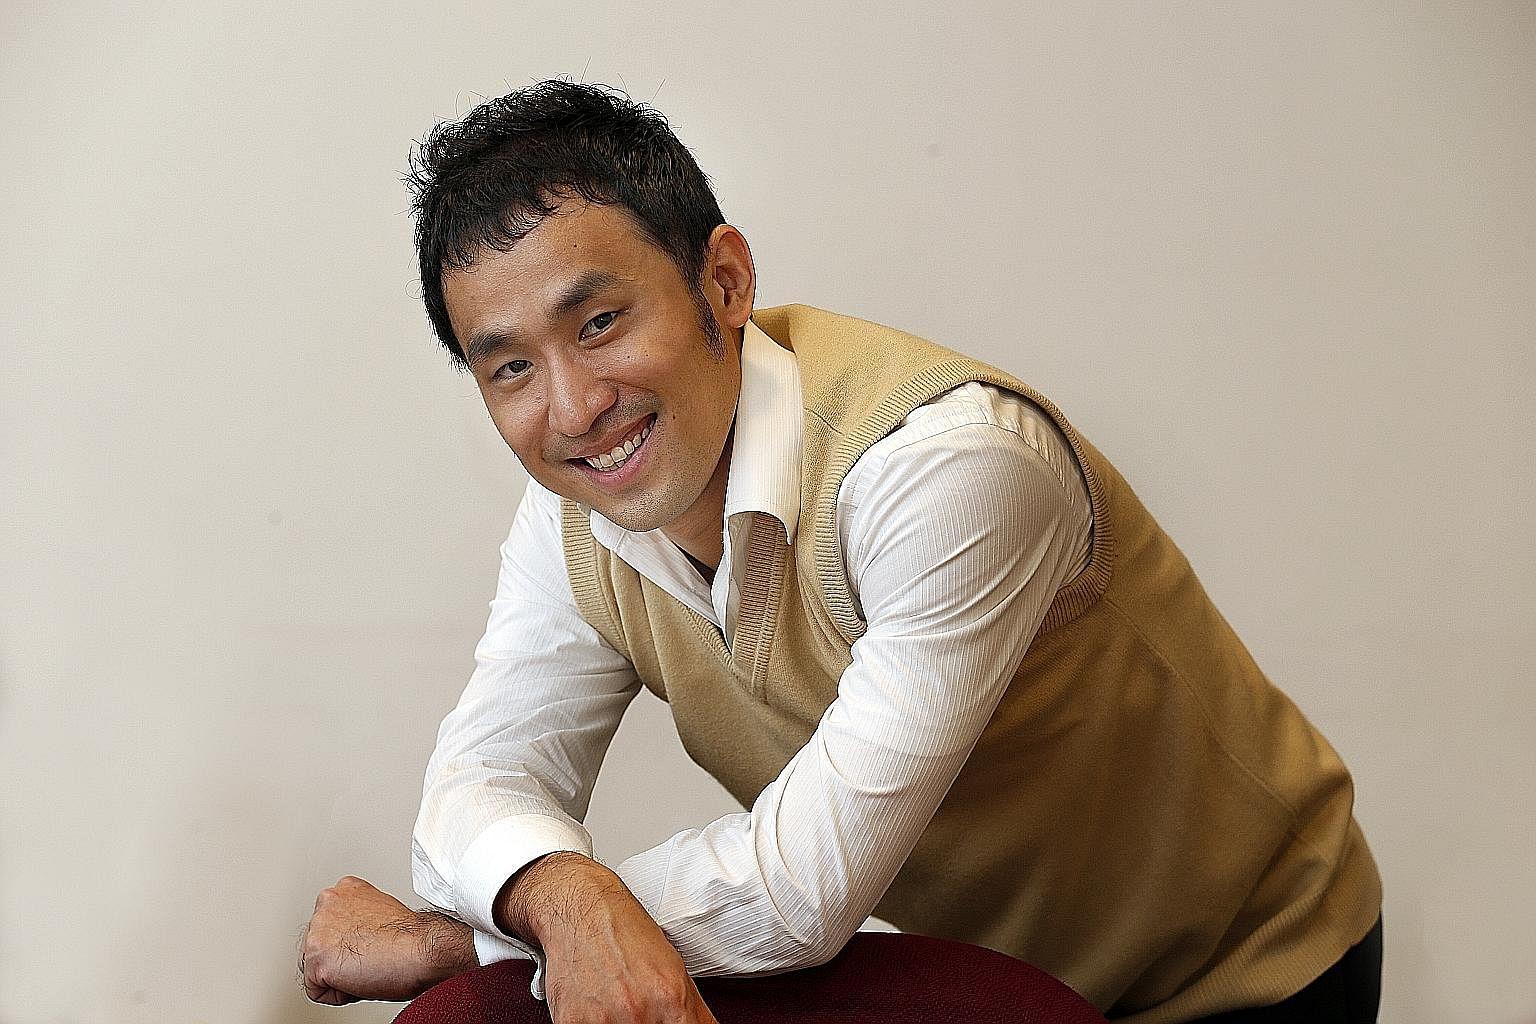 Although Mr Daniel Soh was among the top 5 per cent of Singapore earners in 2009, he left the finance industry the following year to be a social entrepreneur.